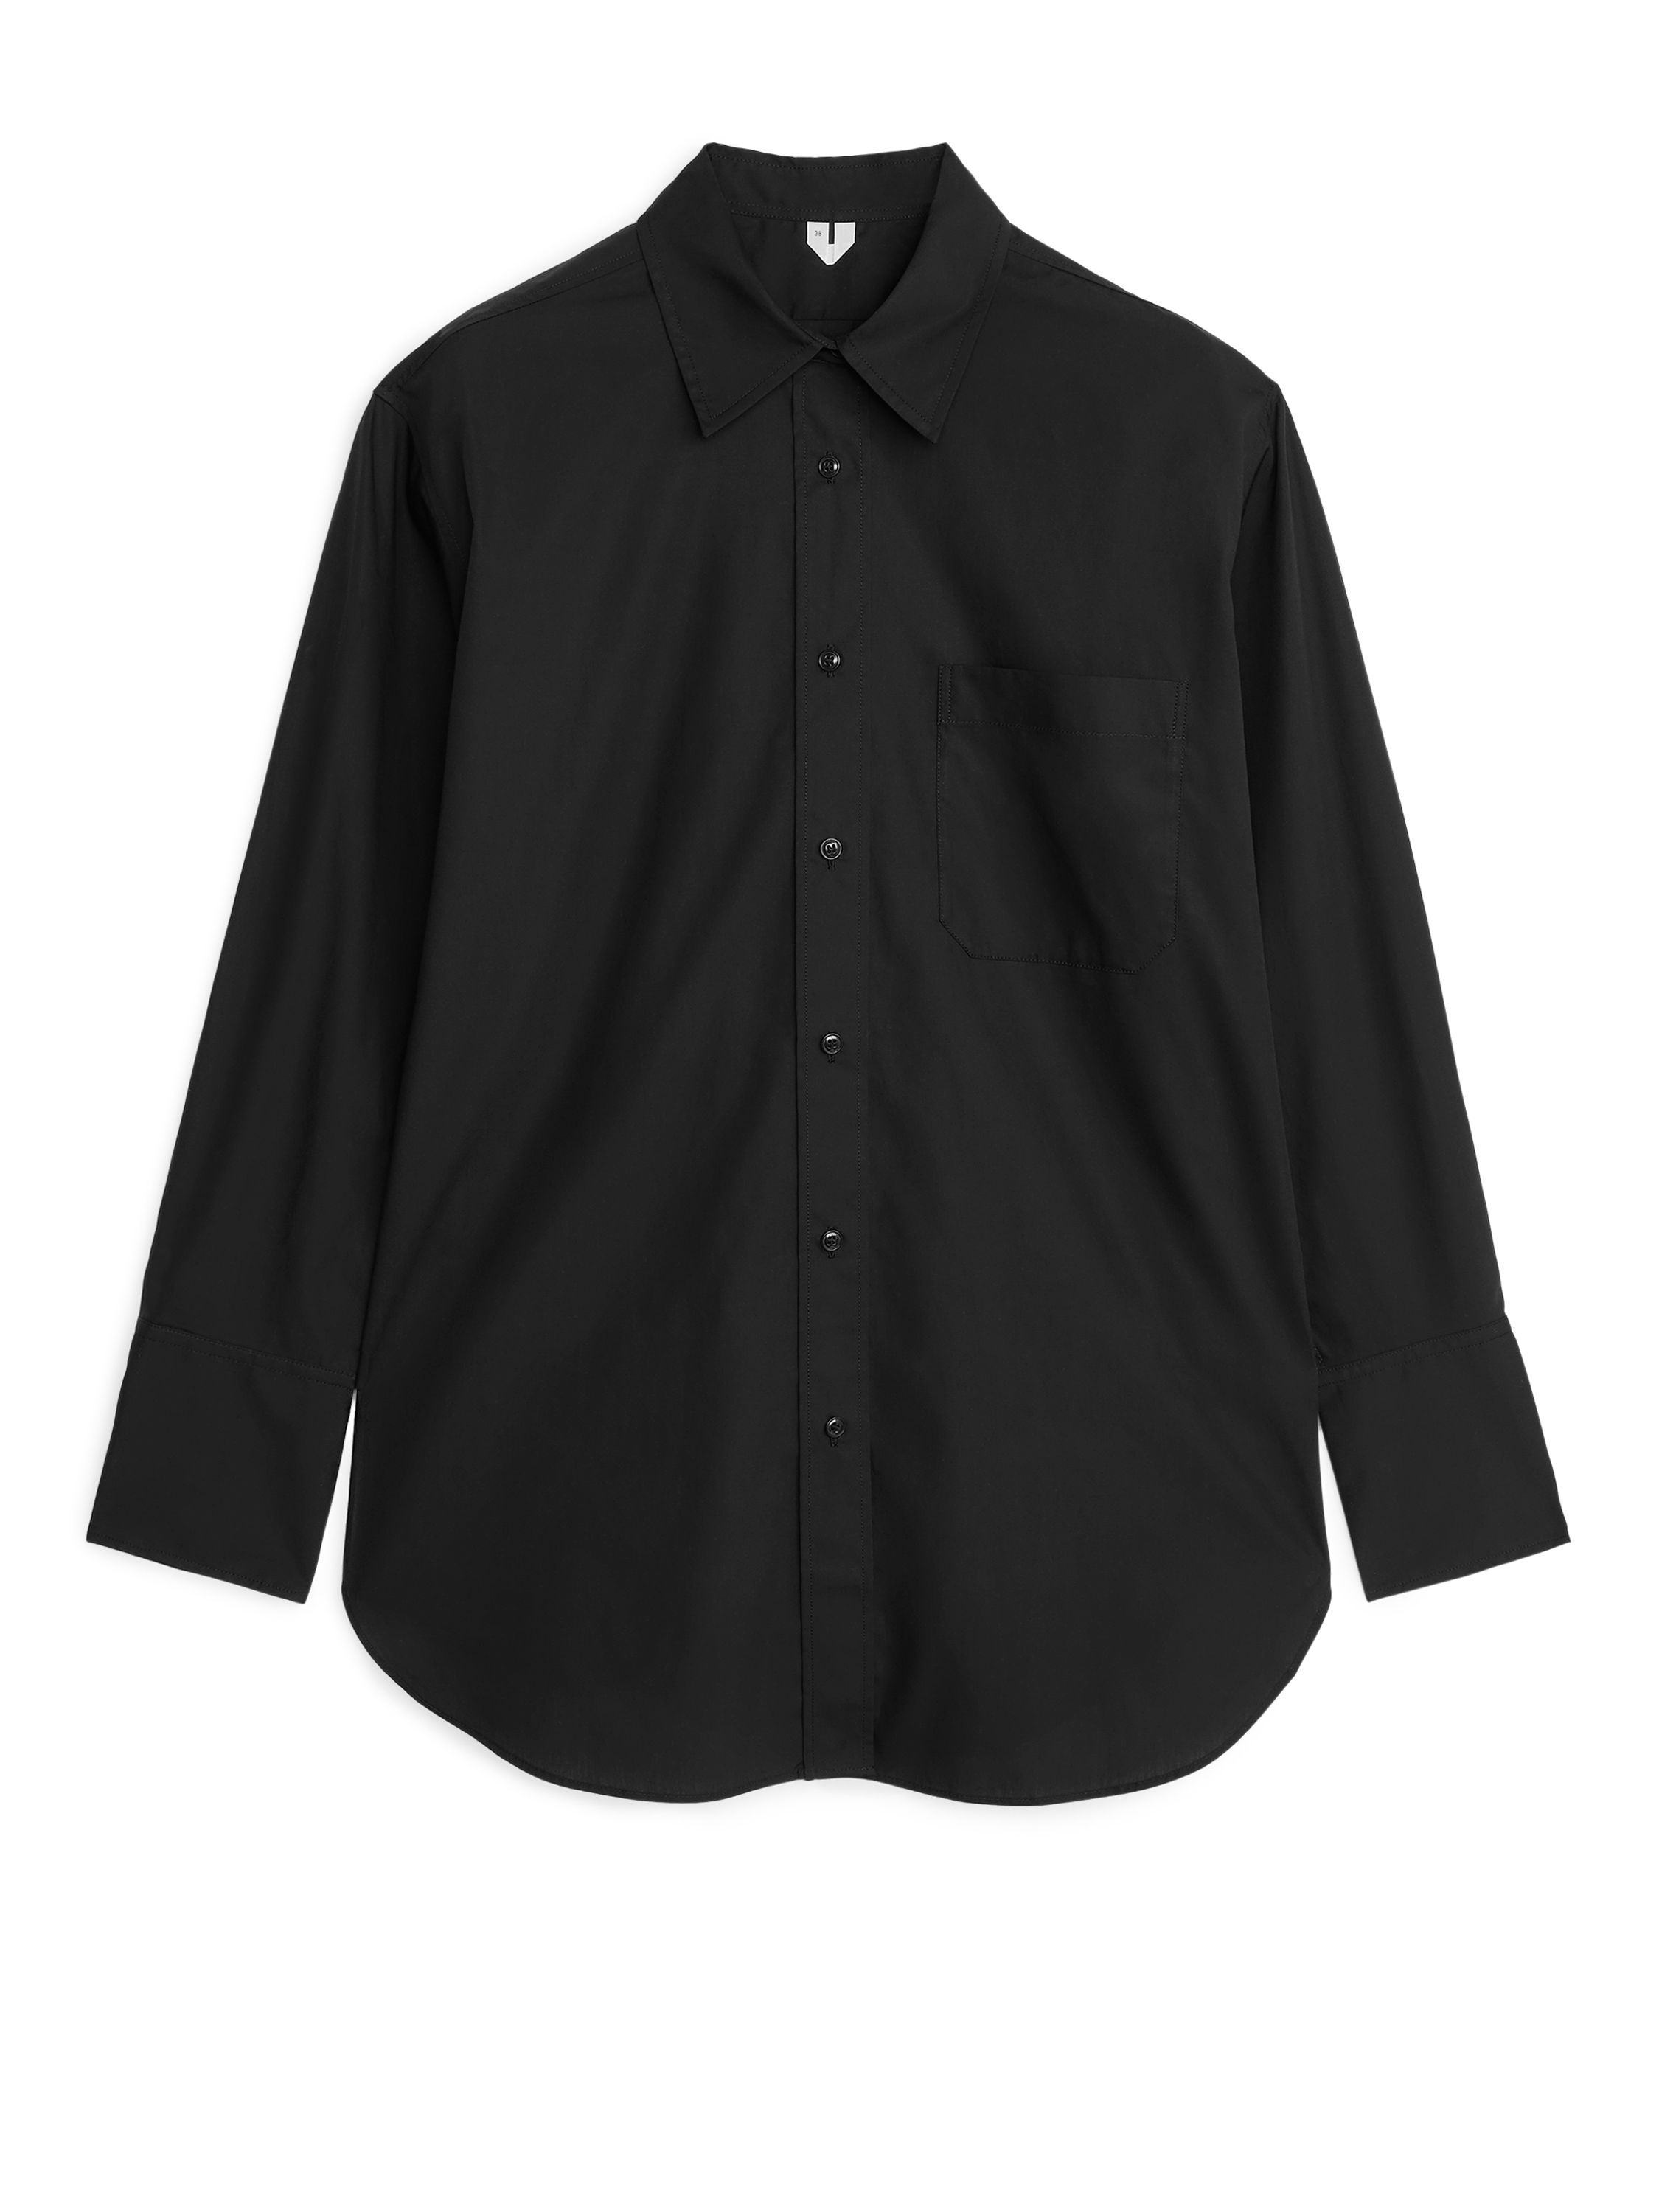 Fabric Swatch image of Arket oversized poplin shirt in black